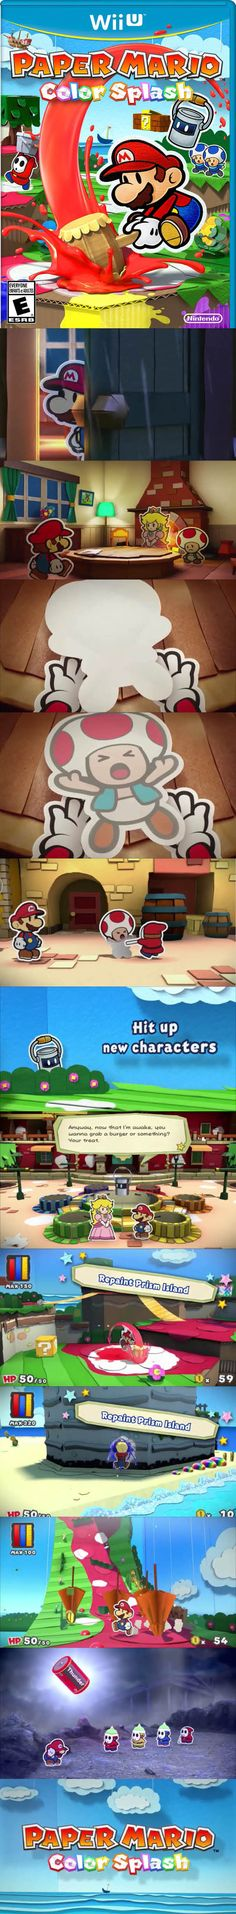 Paper Mario Color Splash is a great edition to the Mario family. Super Mario World, Super Mario Bros, Wii U, Mario G, Paper Mario Color Splash, Gamer News, Nintendo, Loch Ness Monster, Classic Video Games